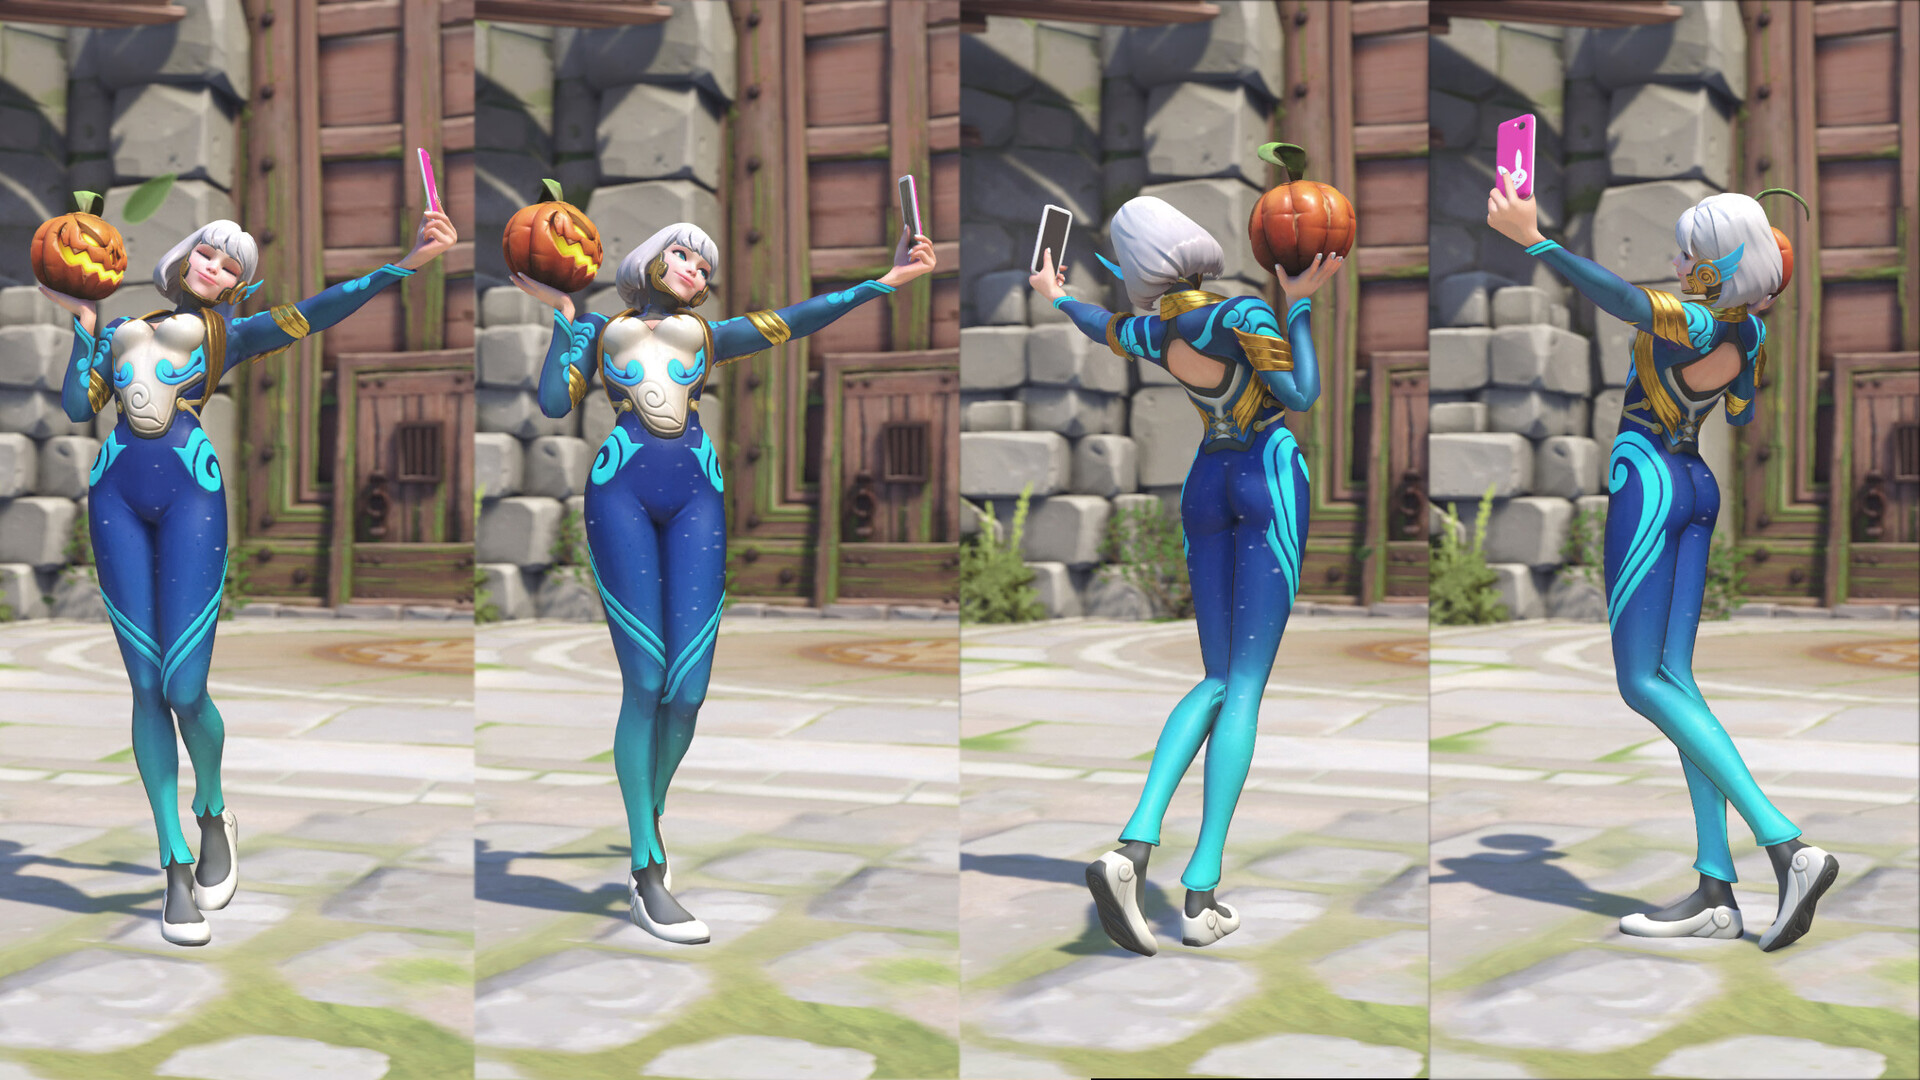 D.Va Cosplay Costume (All Star) from Overwatch